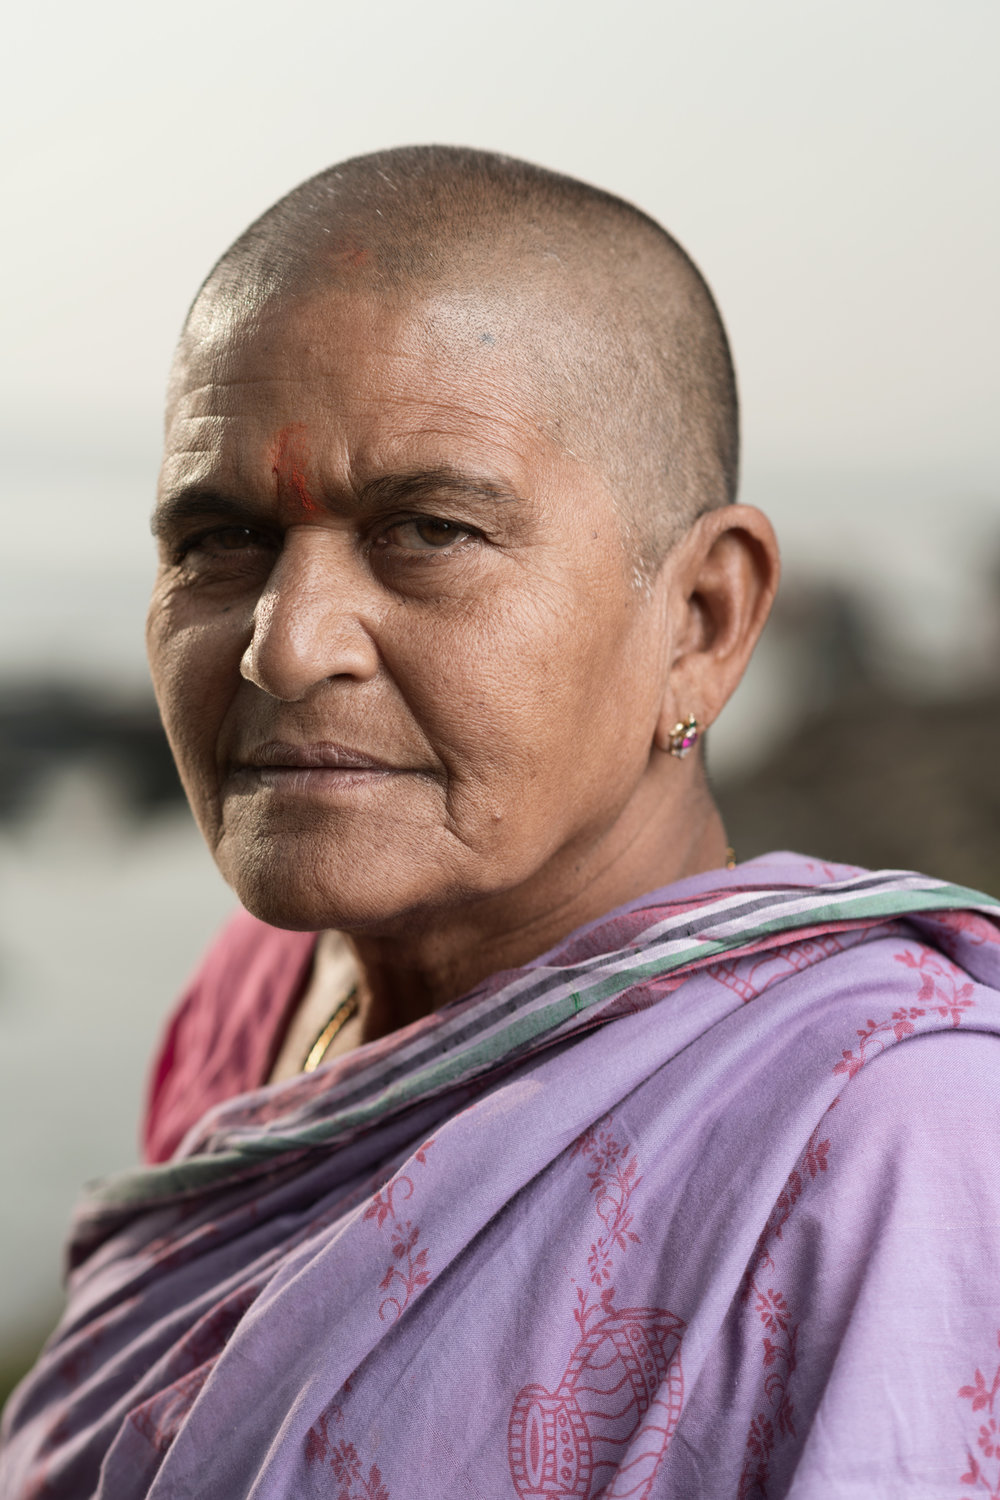 Varanasi_portrait_travel_photography_Manchester_Adventure_Photographer_Jan_Bella25.jpg